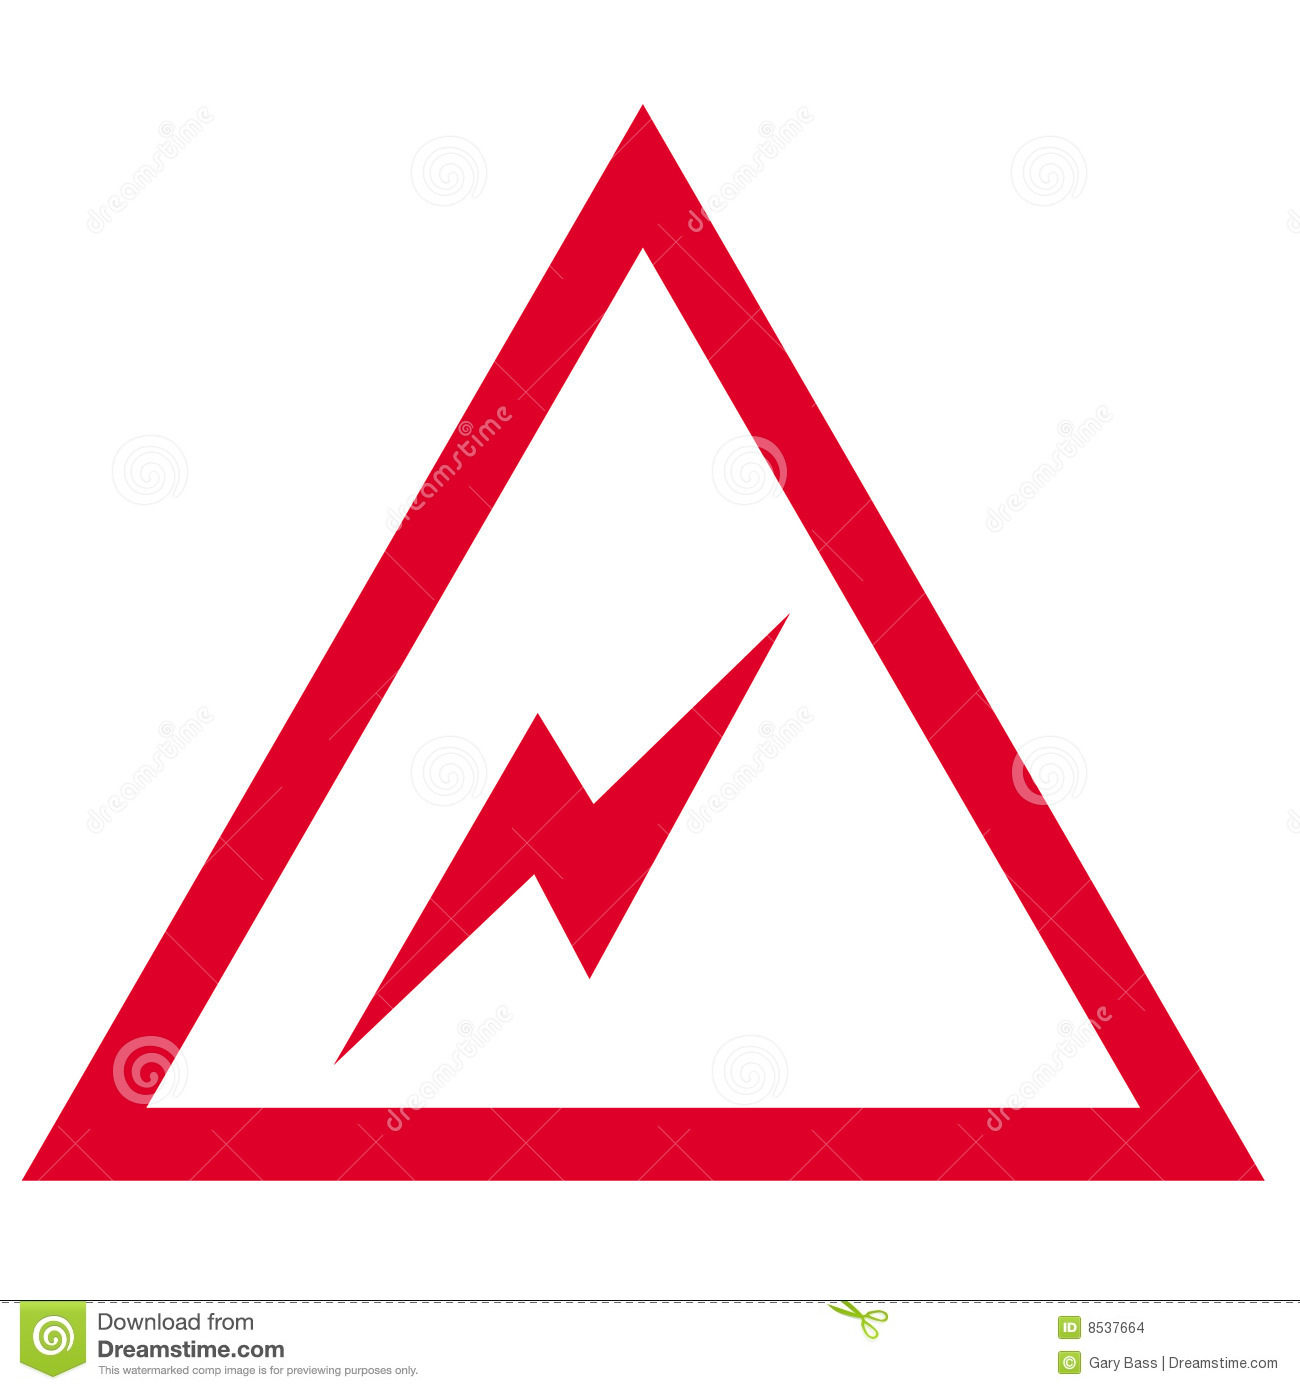 Electrical symbol stock illustration. Illustration of sign - 8537664